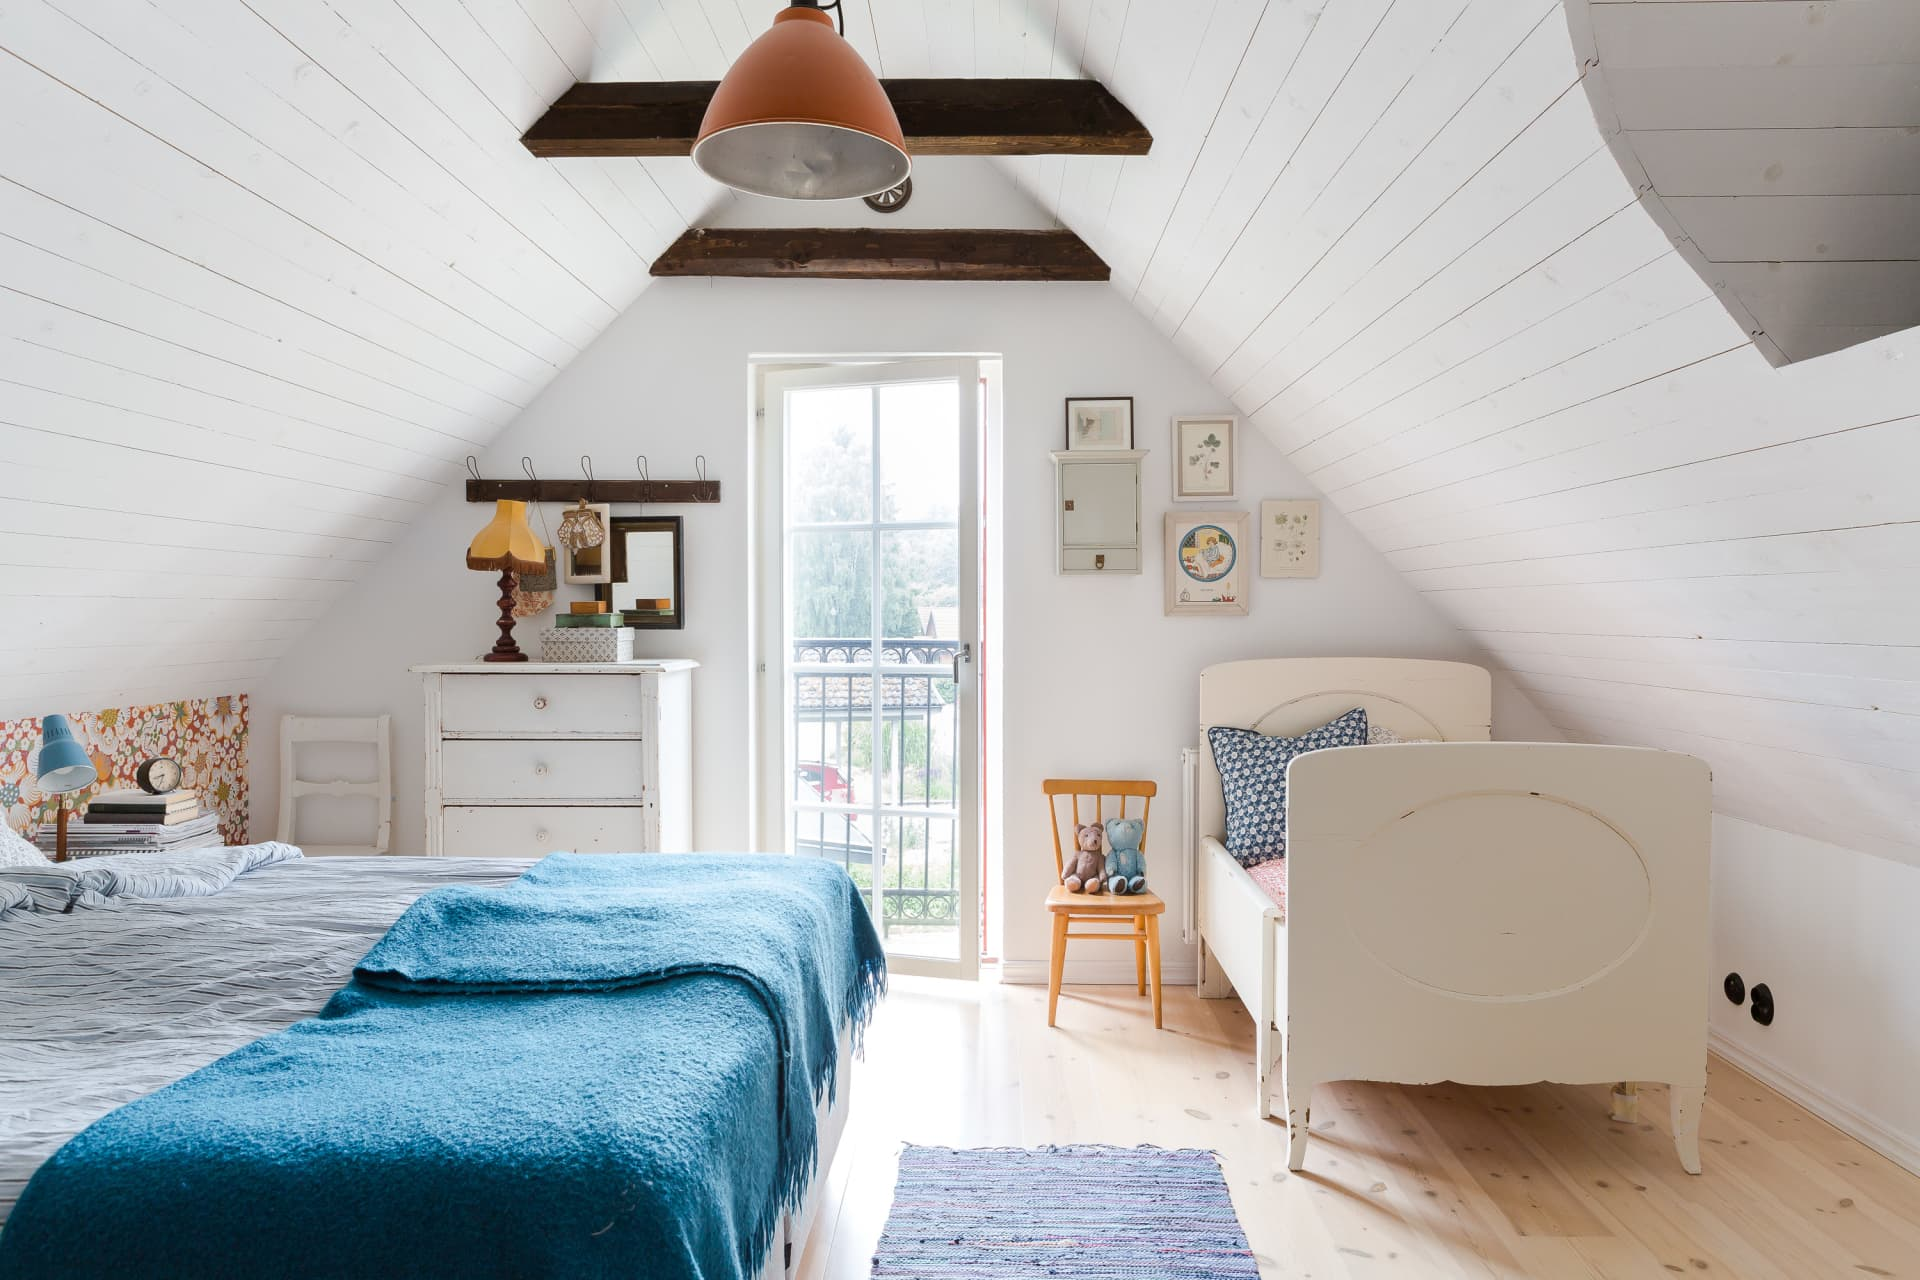 In the master bedroom, the beautiful old Växa bed, bought on Blocket, resides as a keepsake. Both daughters have slept in the bed in younger years. The dresser and the chair are inherited. The ceiling light comes from a farm where it was originally used in a hen house.